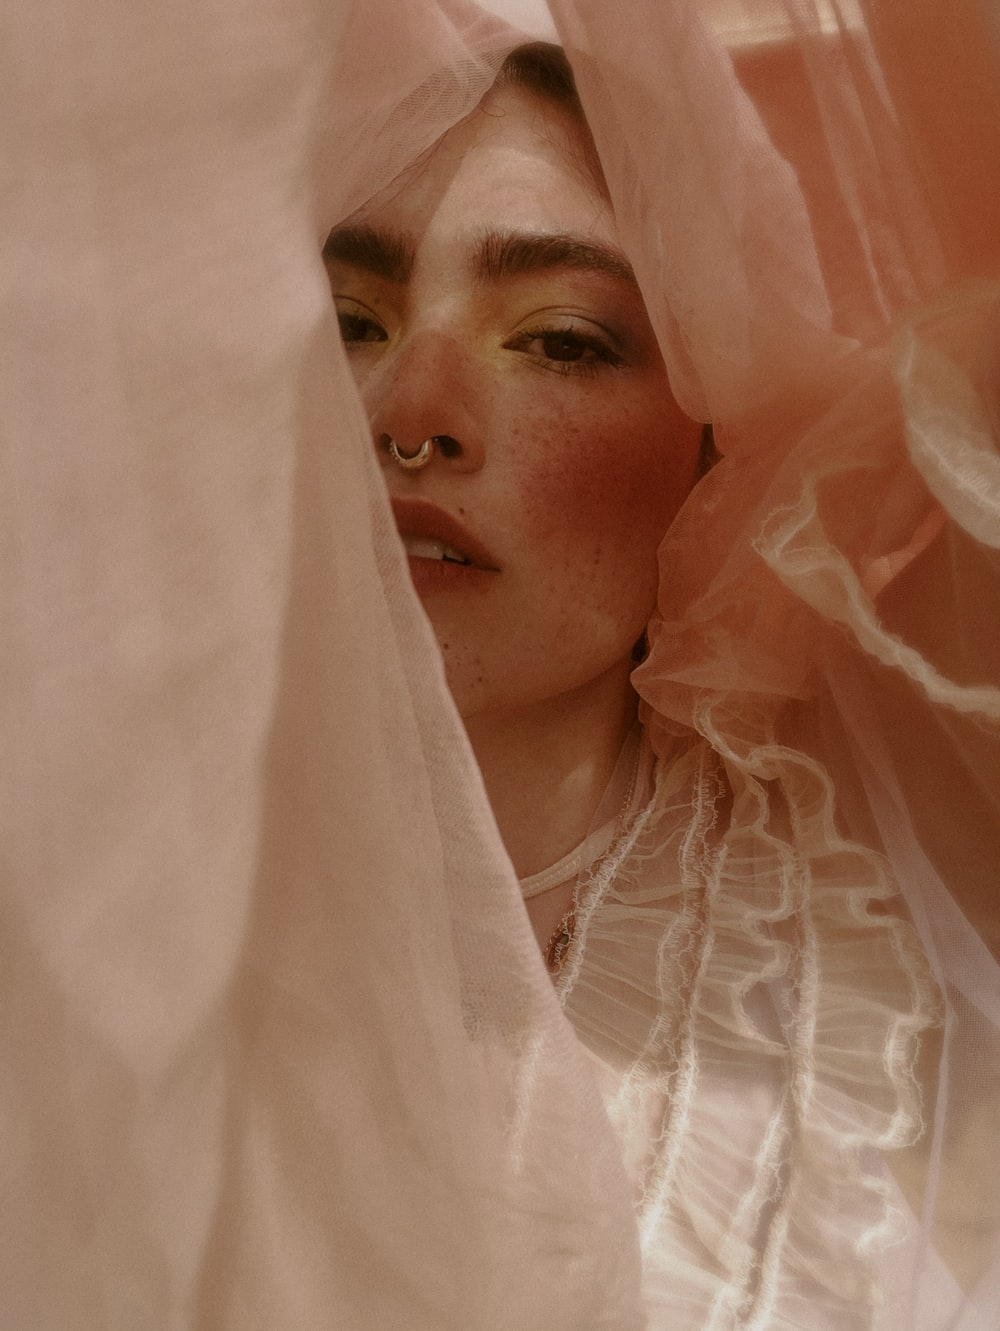 woman in white veil covering her face with white sheer textile